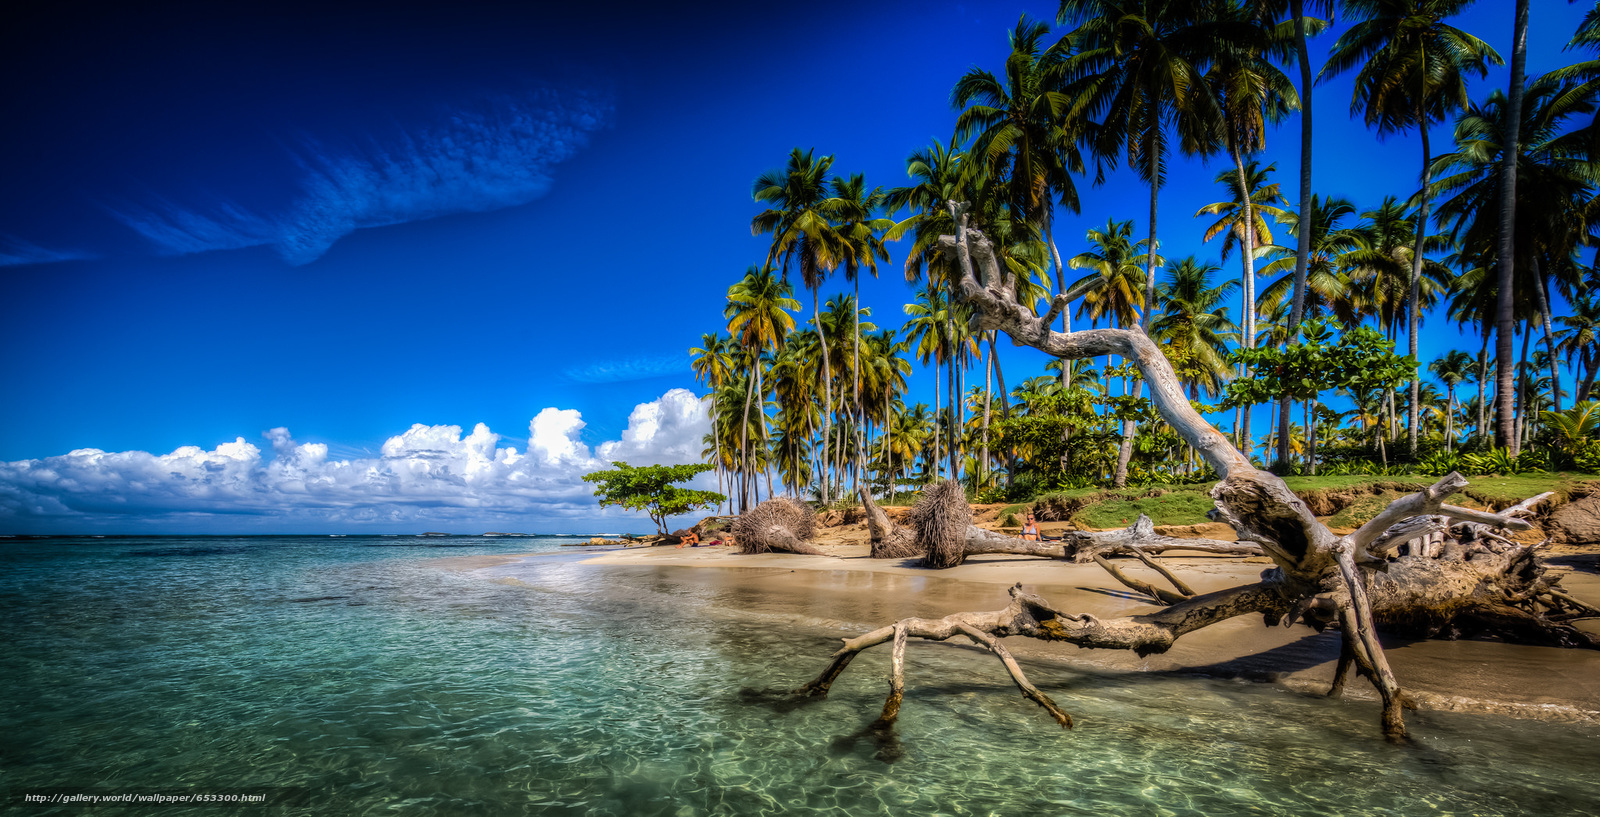 Download wallpaper las terrenas samana dominican - Dominican republic wallpaper ...